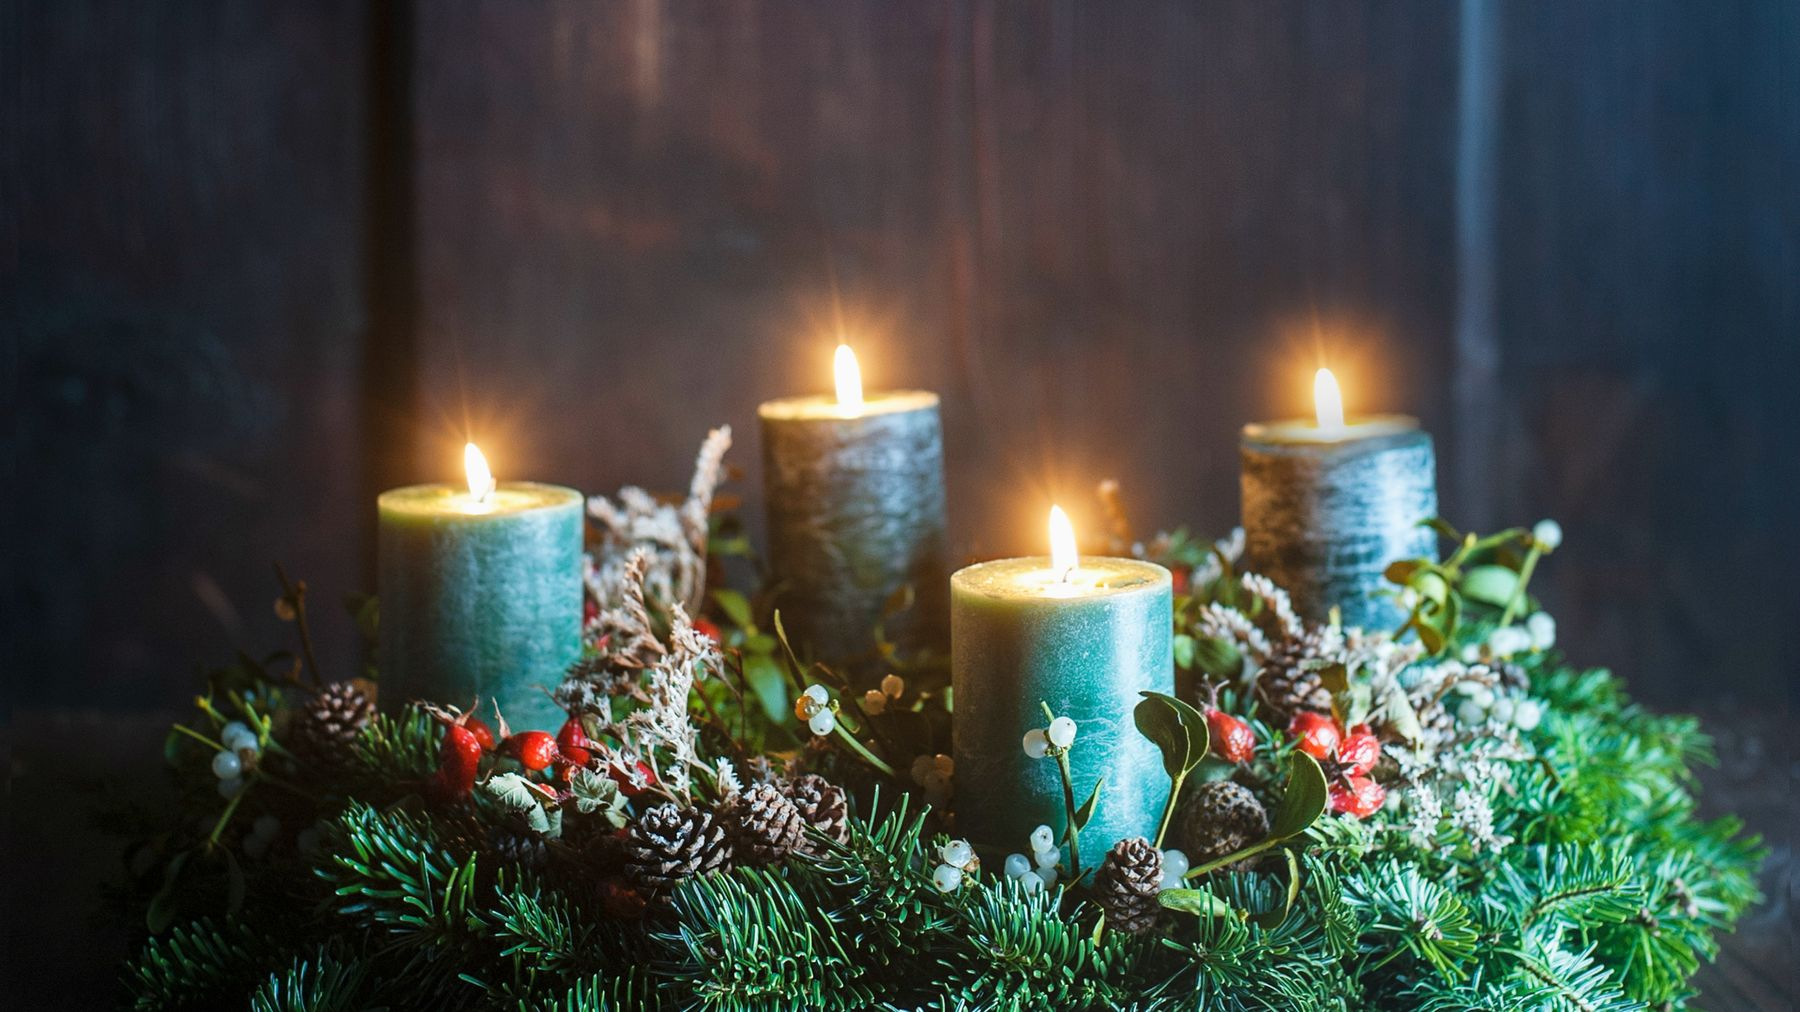 Best Christmas Candles.The Best Festive Candles To Burn This Christmas Grazia